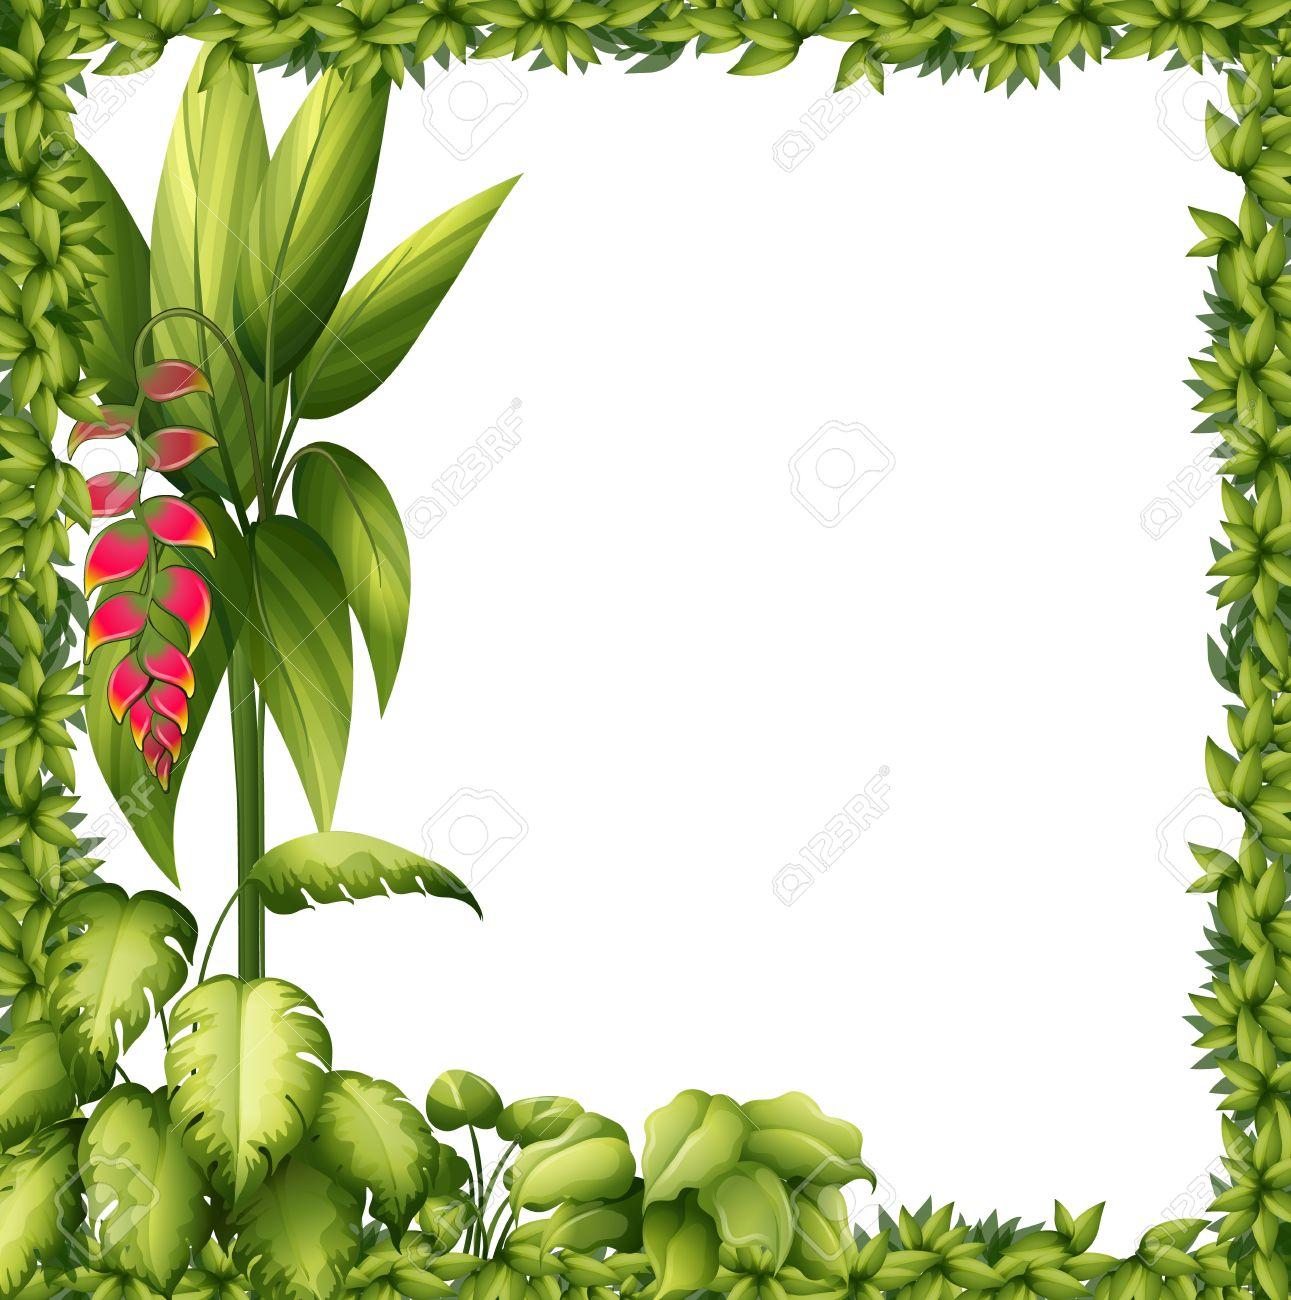 illustration of a green frame with a flower on a white background stock vector 17524626